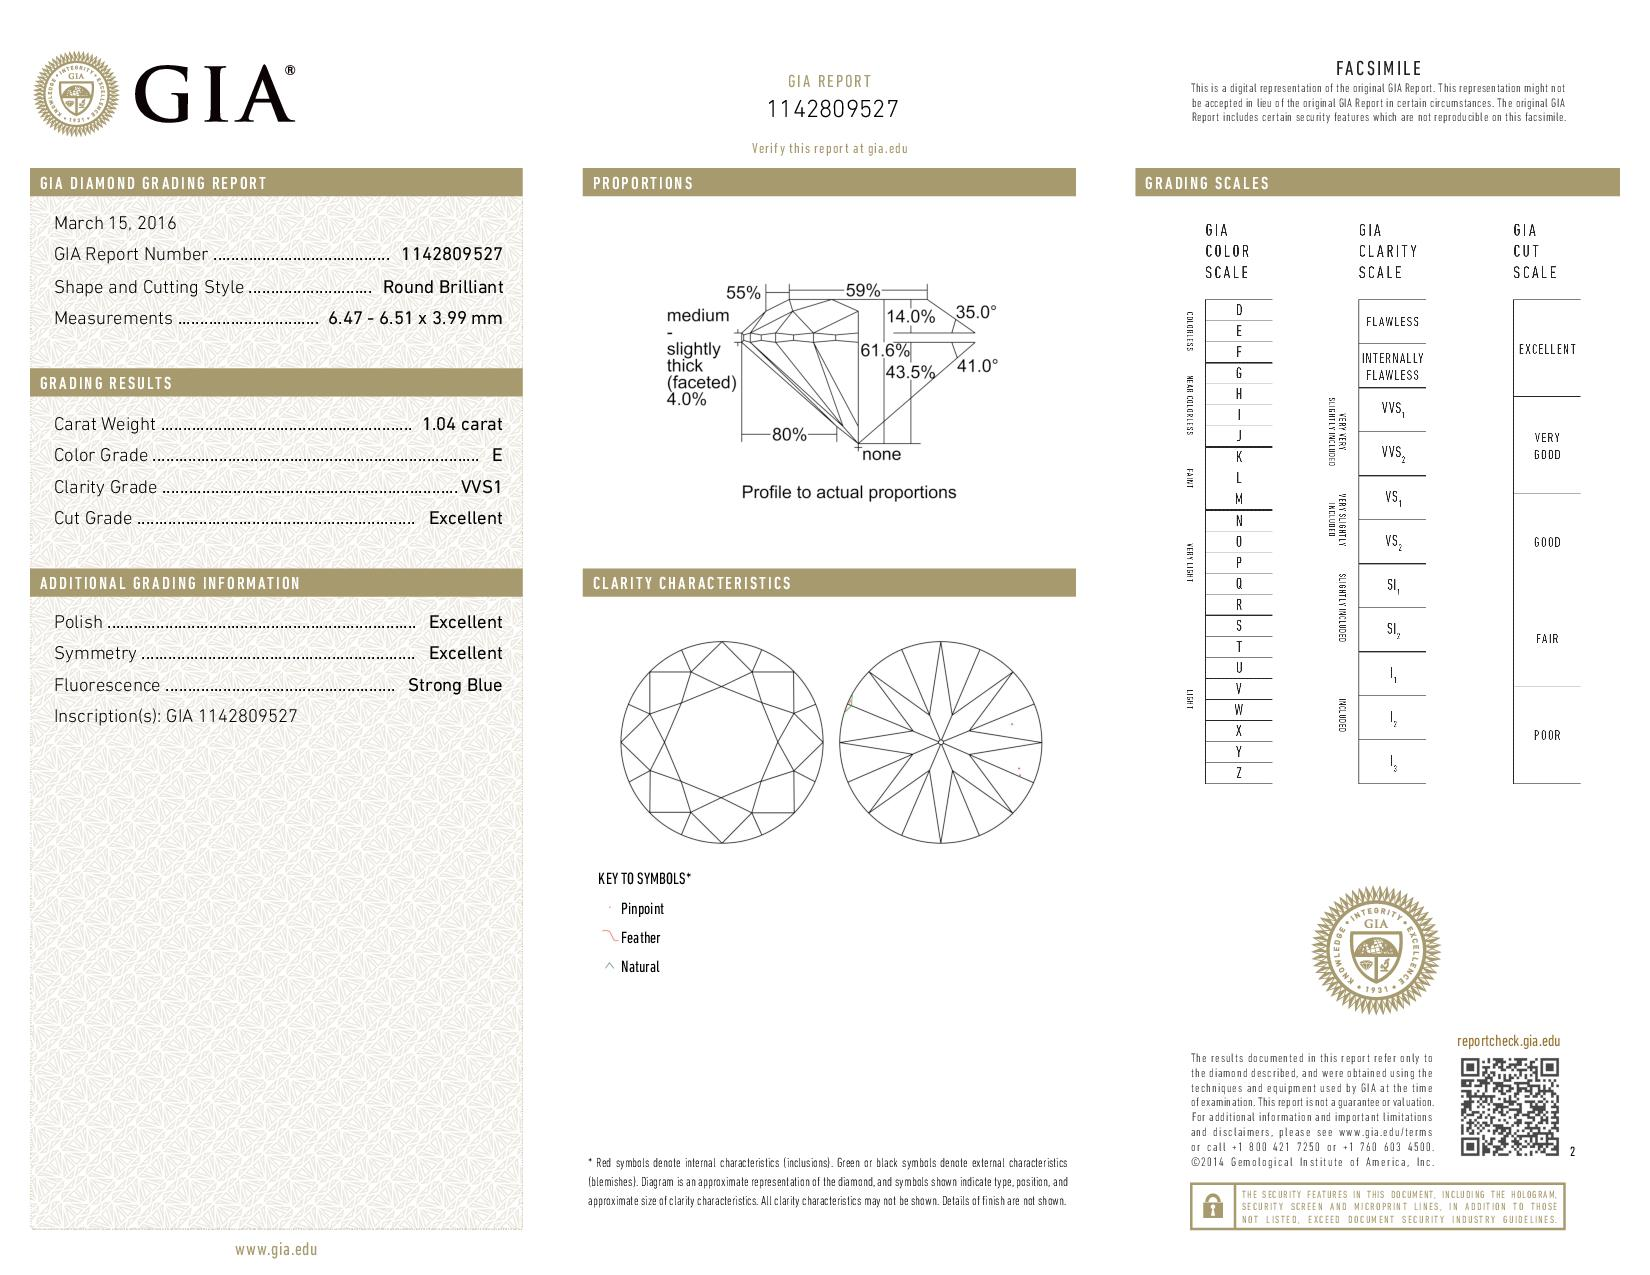 This is a 1.04 carat round shape, E color, VVS1 clarity natural diamond accompanied by a GIA grading report.